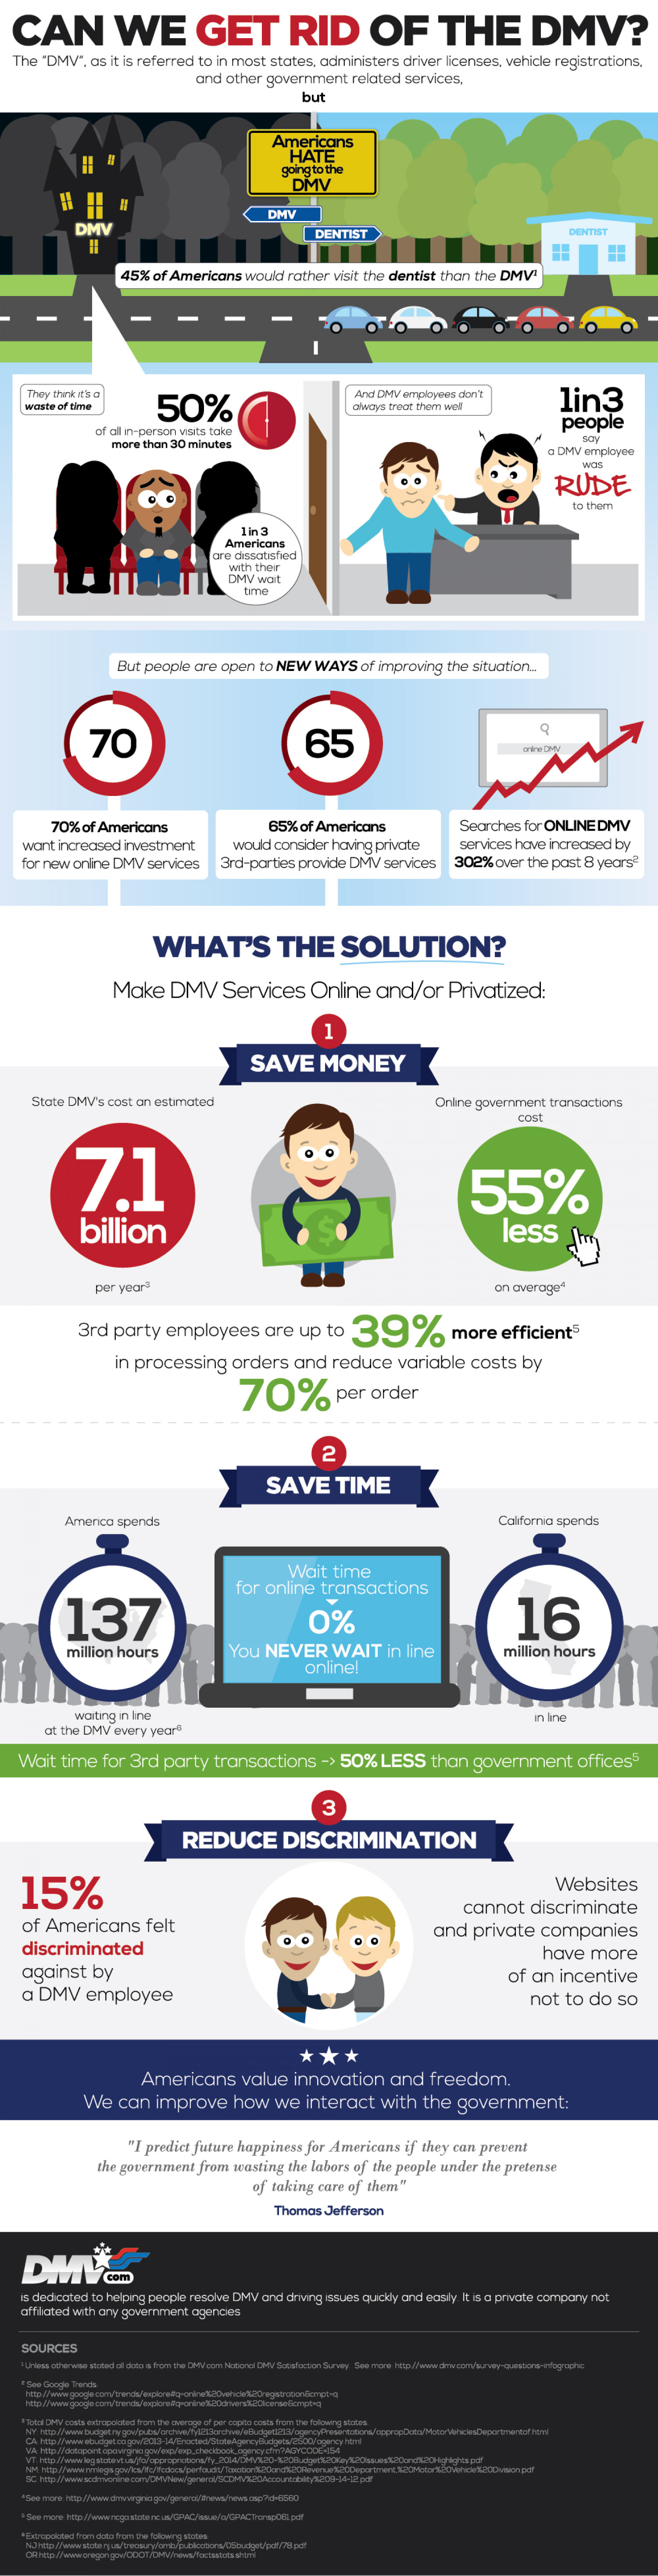 Can We Get Rid of the DMV? Infographic